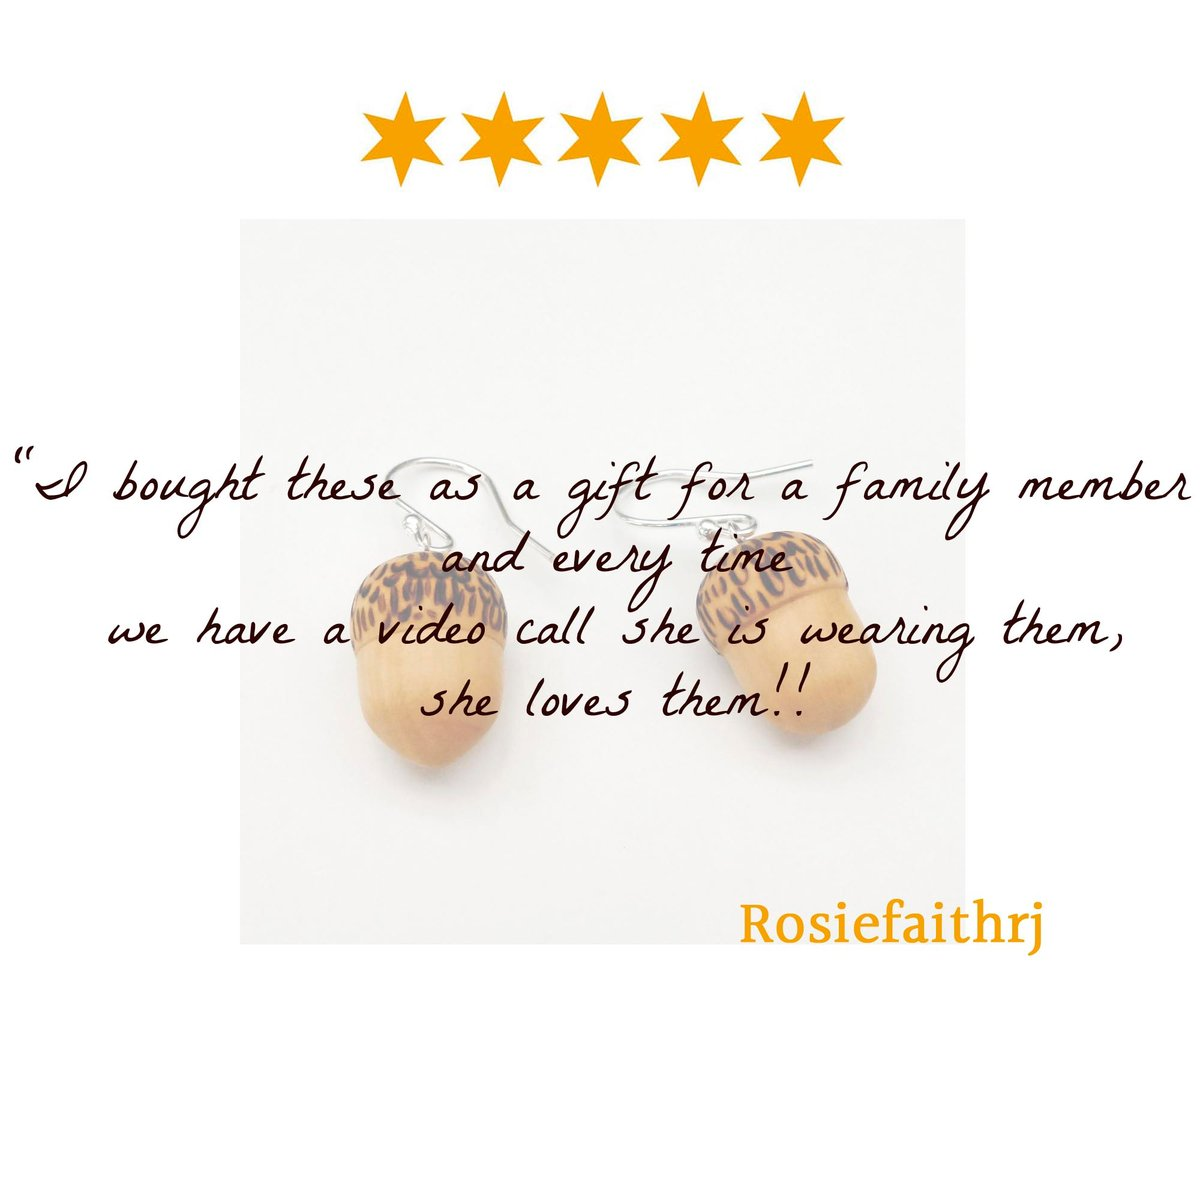 It's lovely to hear my little acorn earrings are spreading joy, even during lockdown. Thanks for letting me know Rosie.  #acornjewellery #handmadelove #thoughtfulgifts